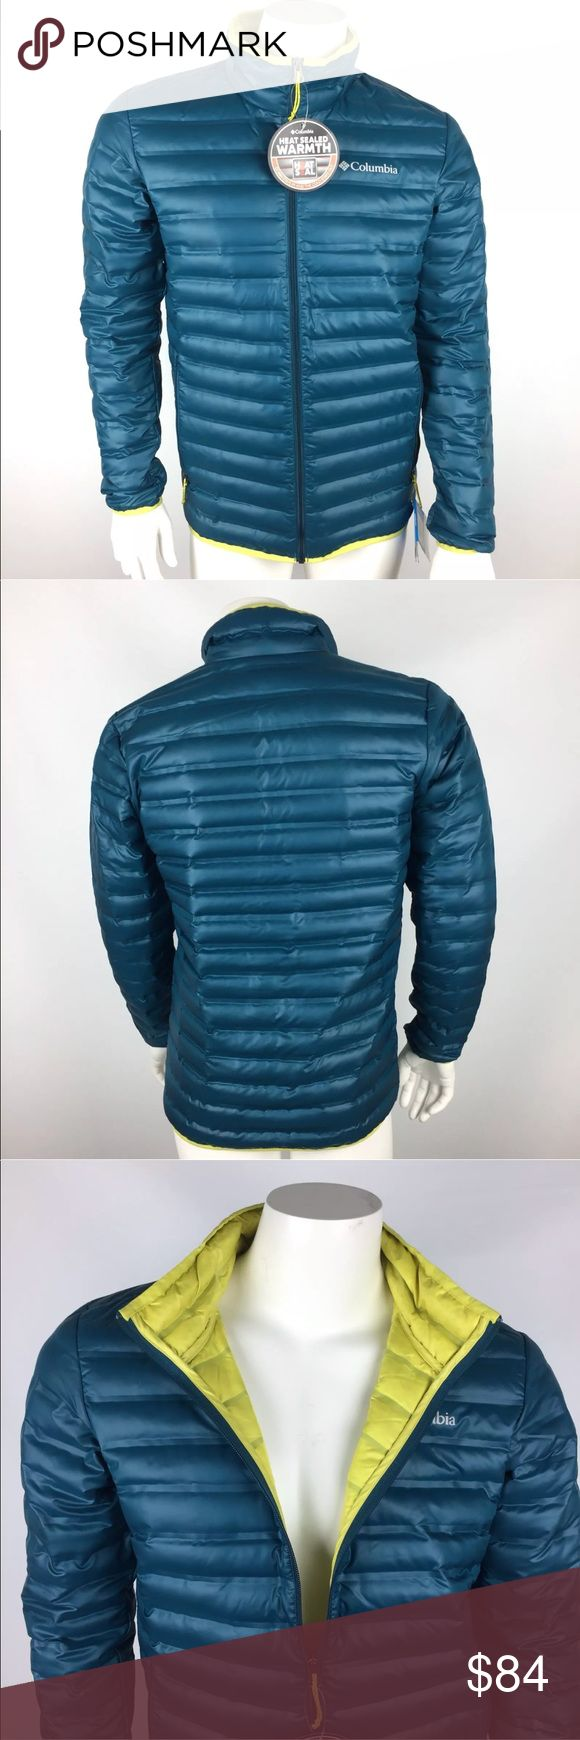 Columbia Flash Forward Me s Down Jacket Small Columbia Flash Forward Down Jacket Men's Size: Small 650 Fill Down Water Resistant Blue/Green Color with Yellow Inner color Heat Seal Columbia Jackets & Coats Puffers